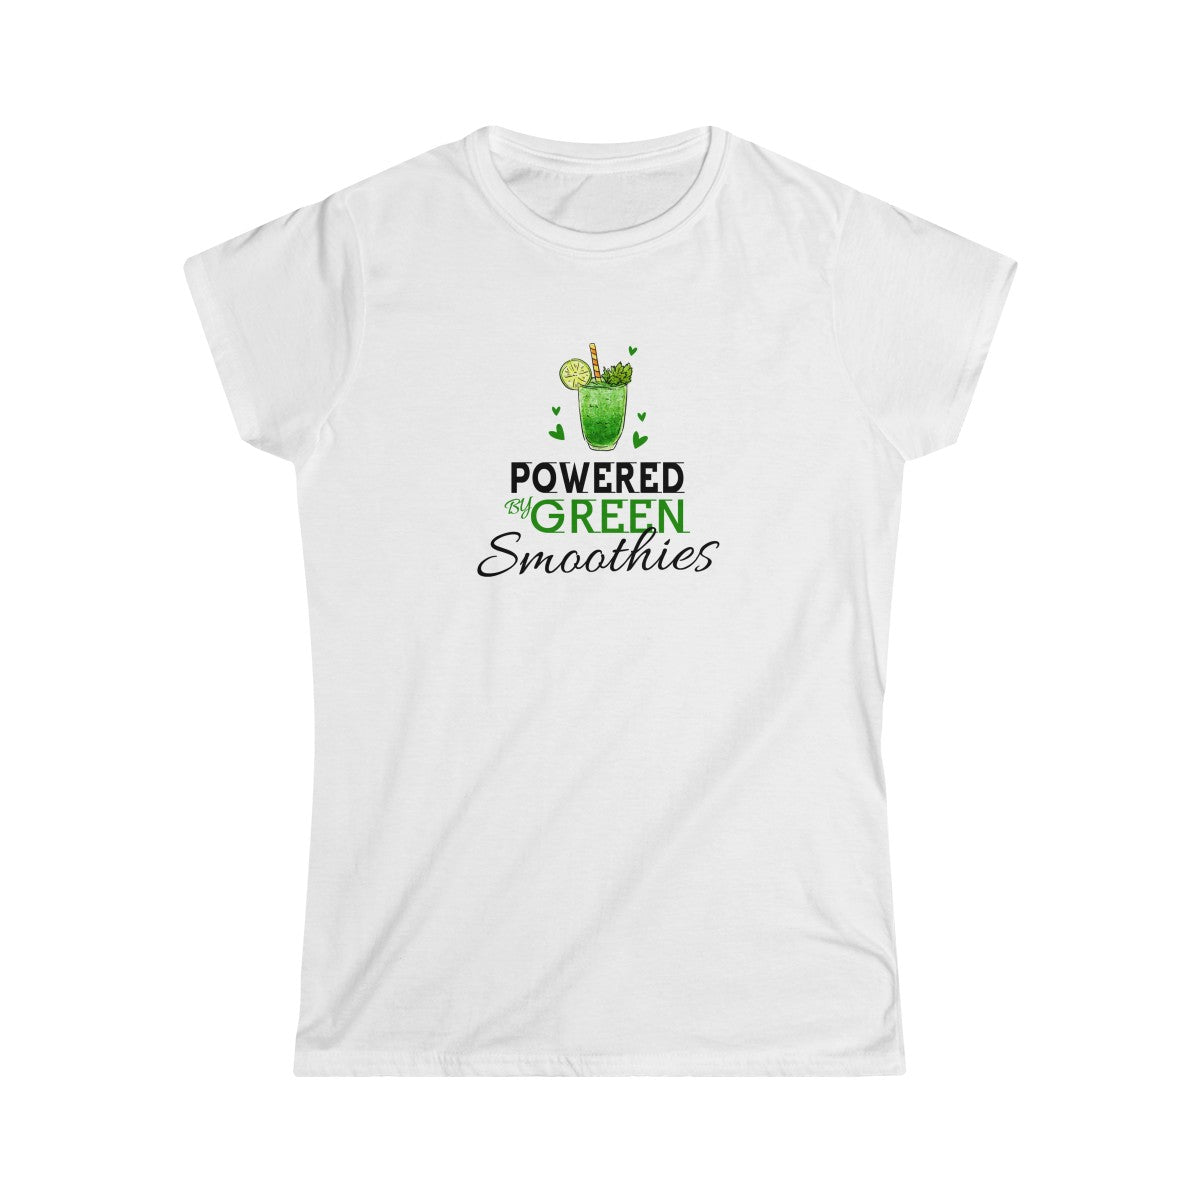 Powered By Green Smoothies Tshirt